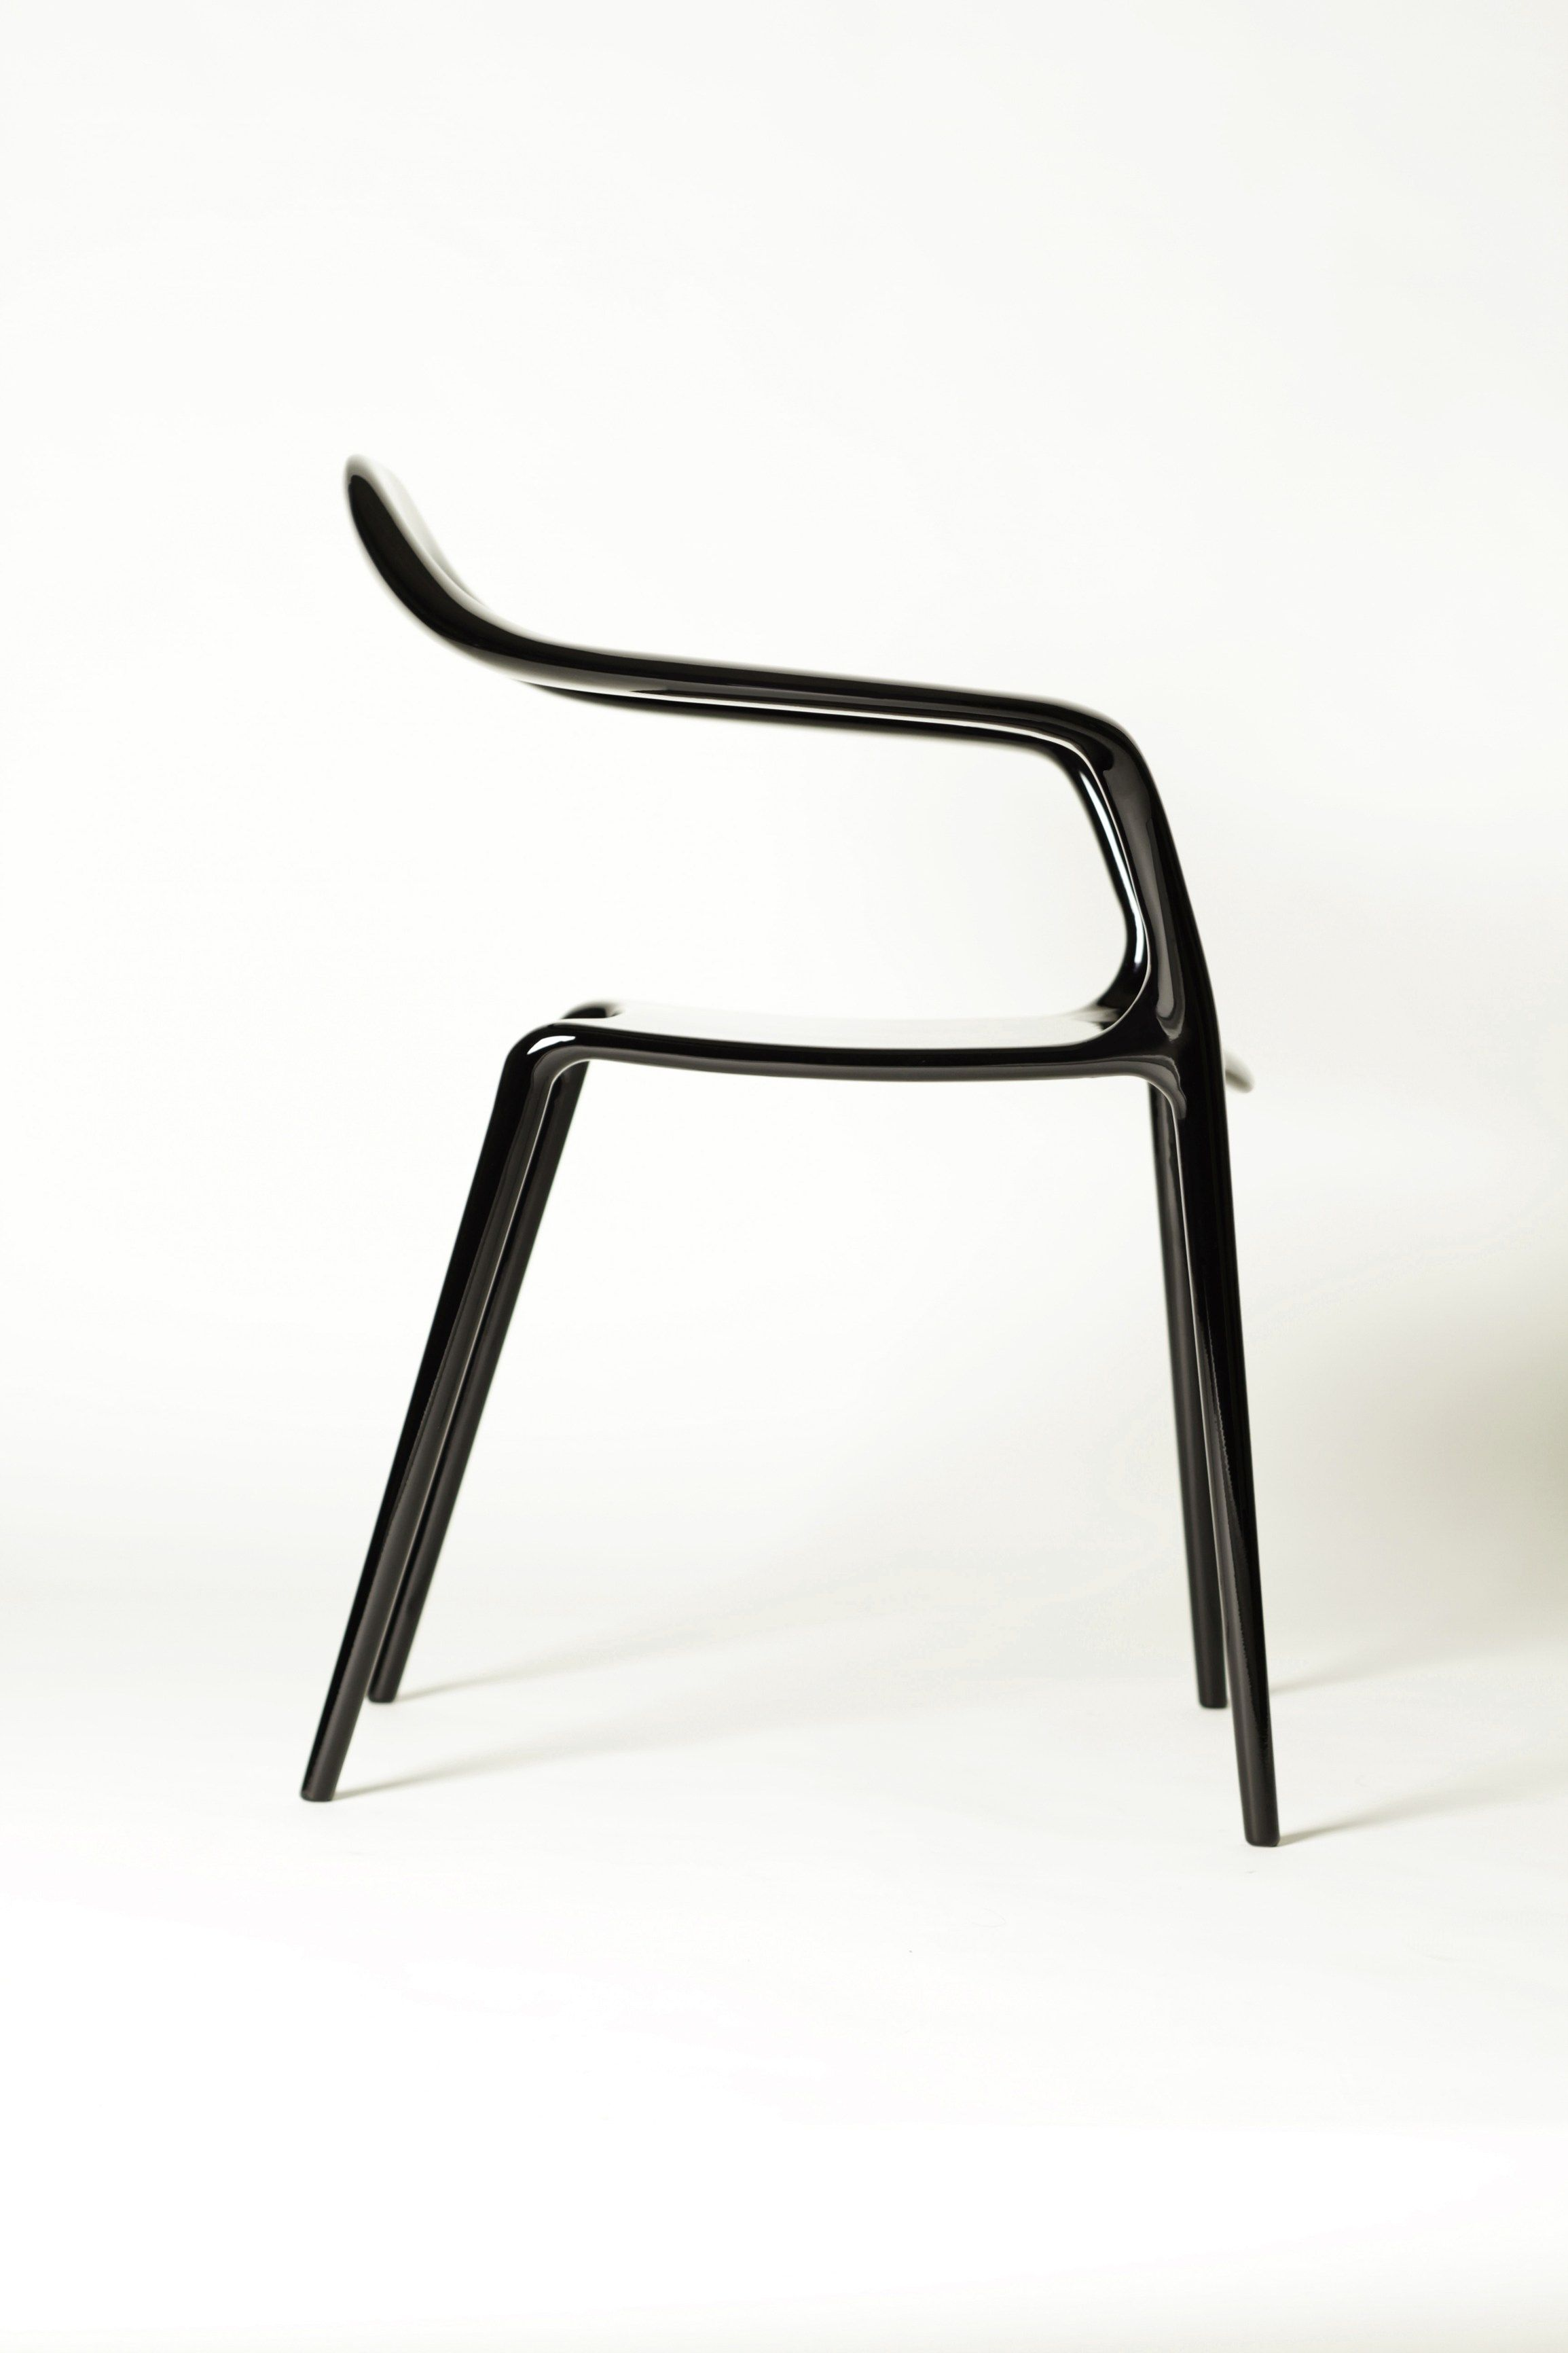 Chair Alea Kubikoff Furniture Pinterest Tables And Interiors # Muebles Pezzani